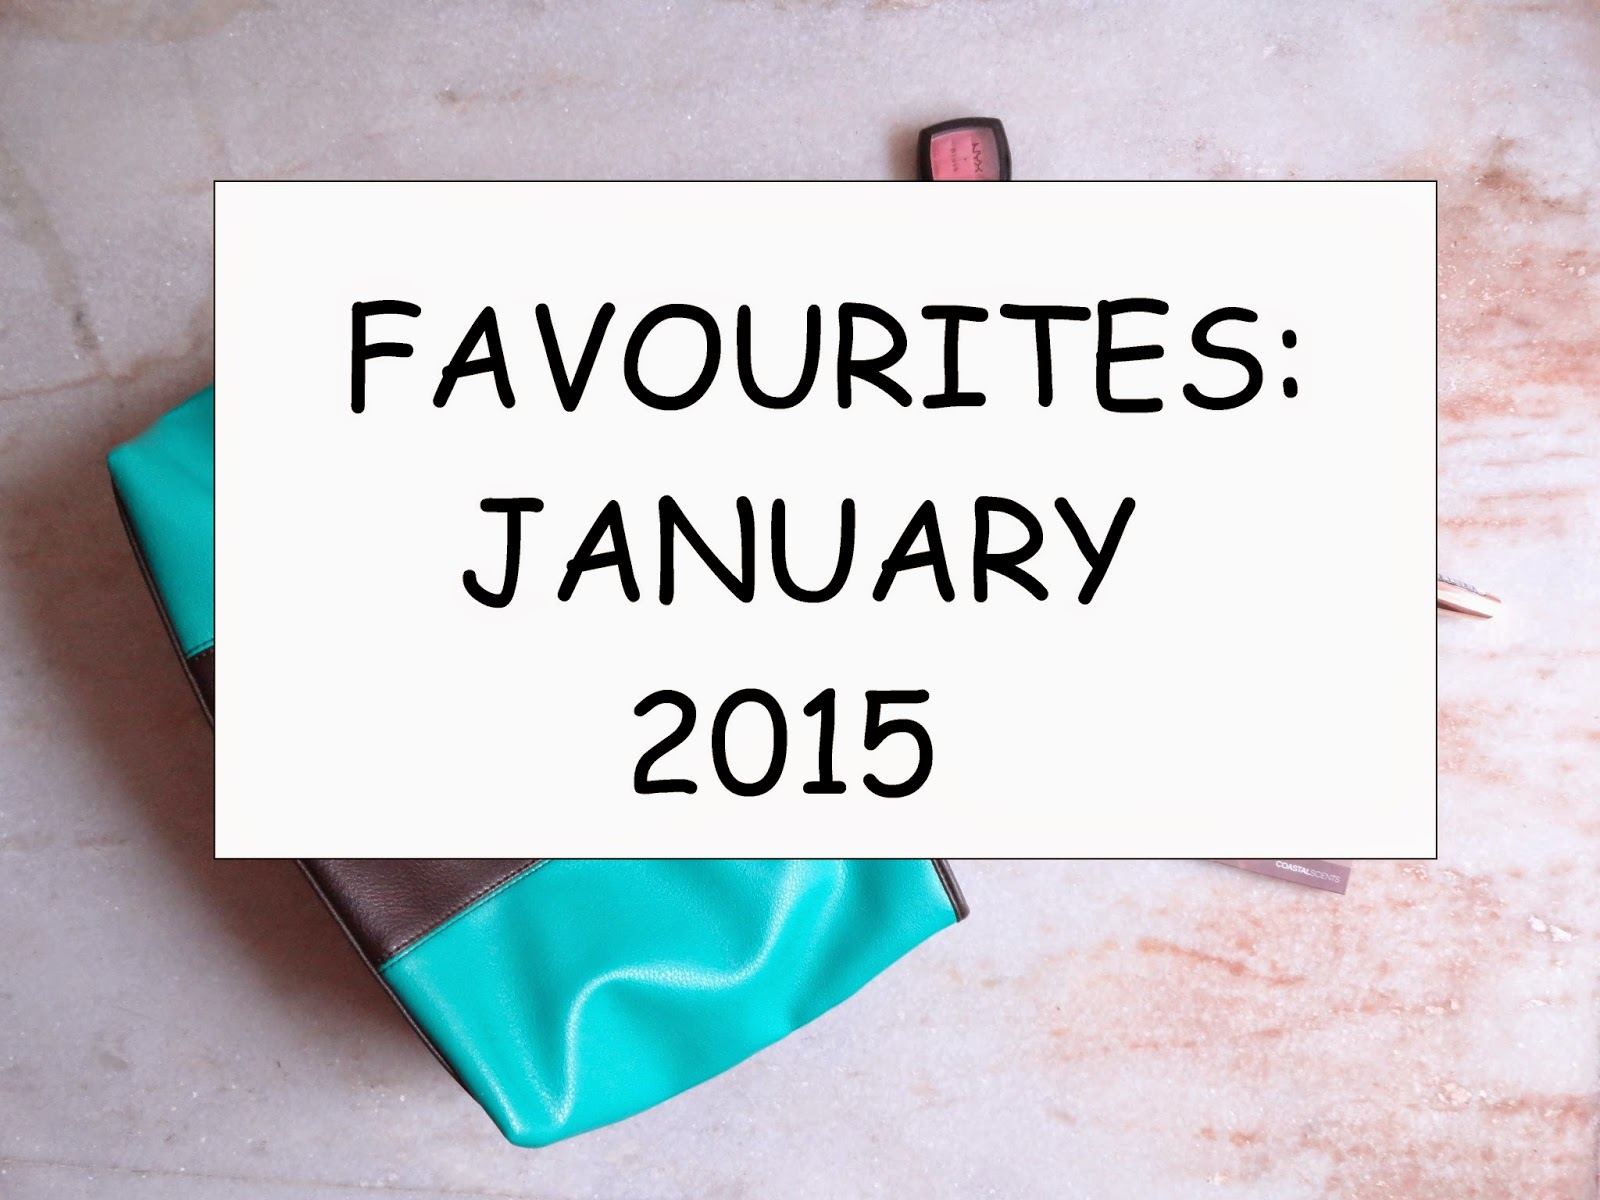 Monthly Favourites: January 2015 image